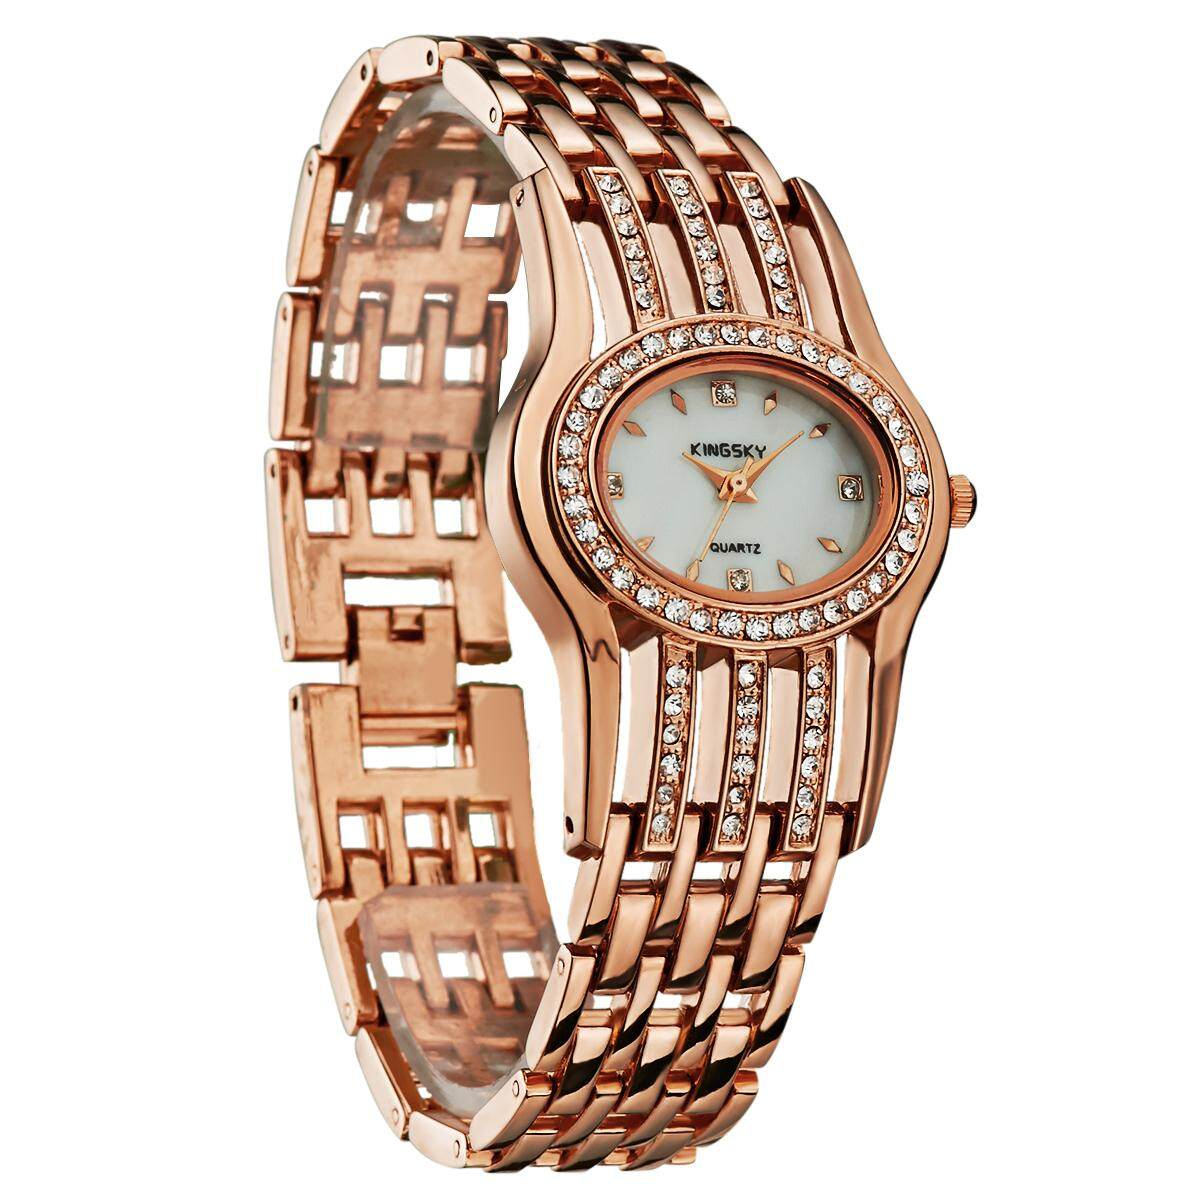 Ladies fashion watches uk 43